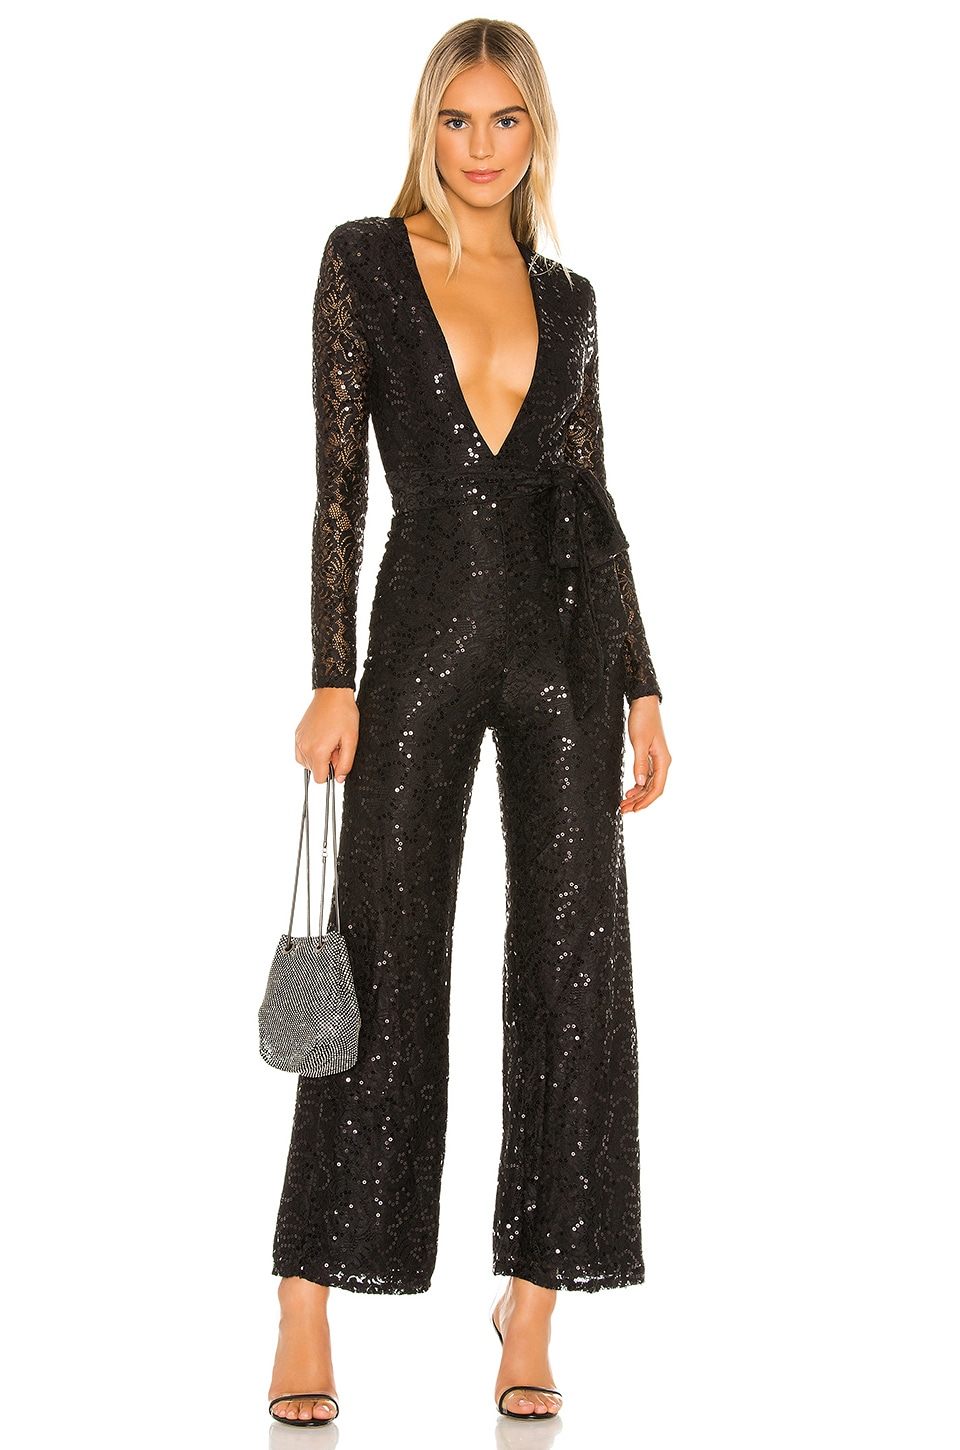 Lovers + Friends Leighton Jumpsuit in Black